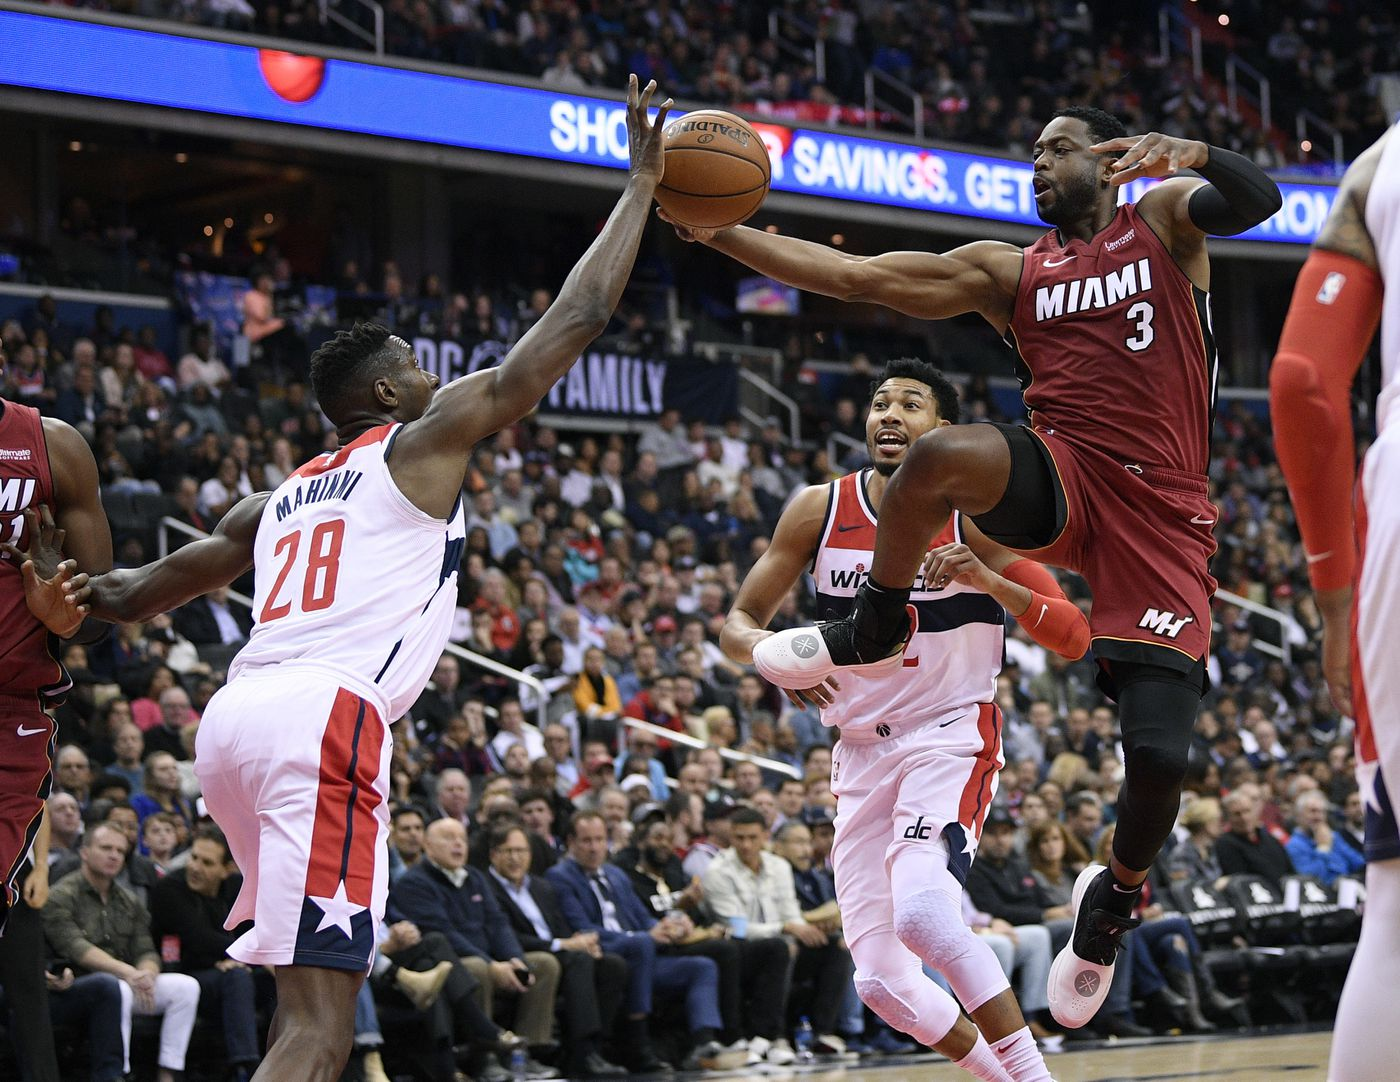 Olynyk S Putback Off Wade S Miss Lifts Heat Past Wiz 113 112